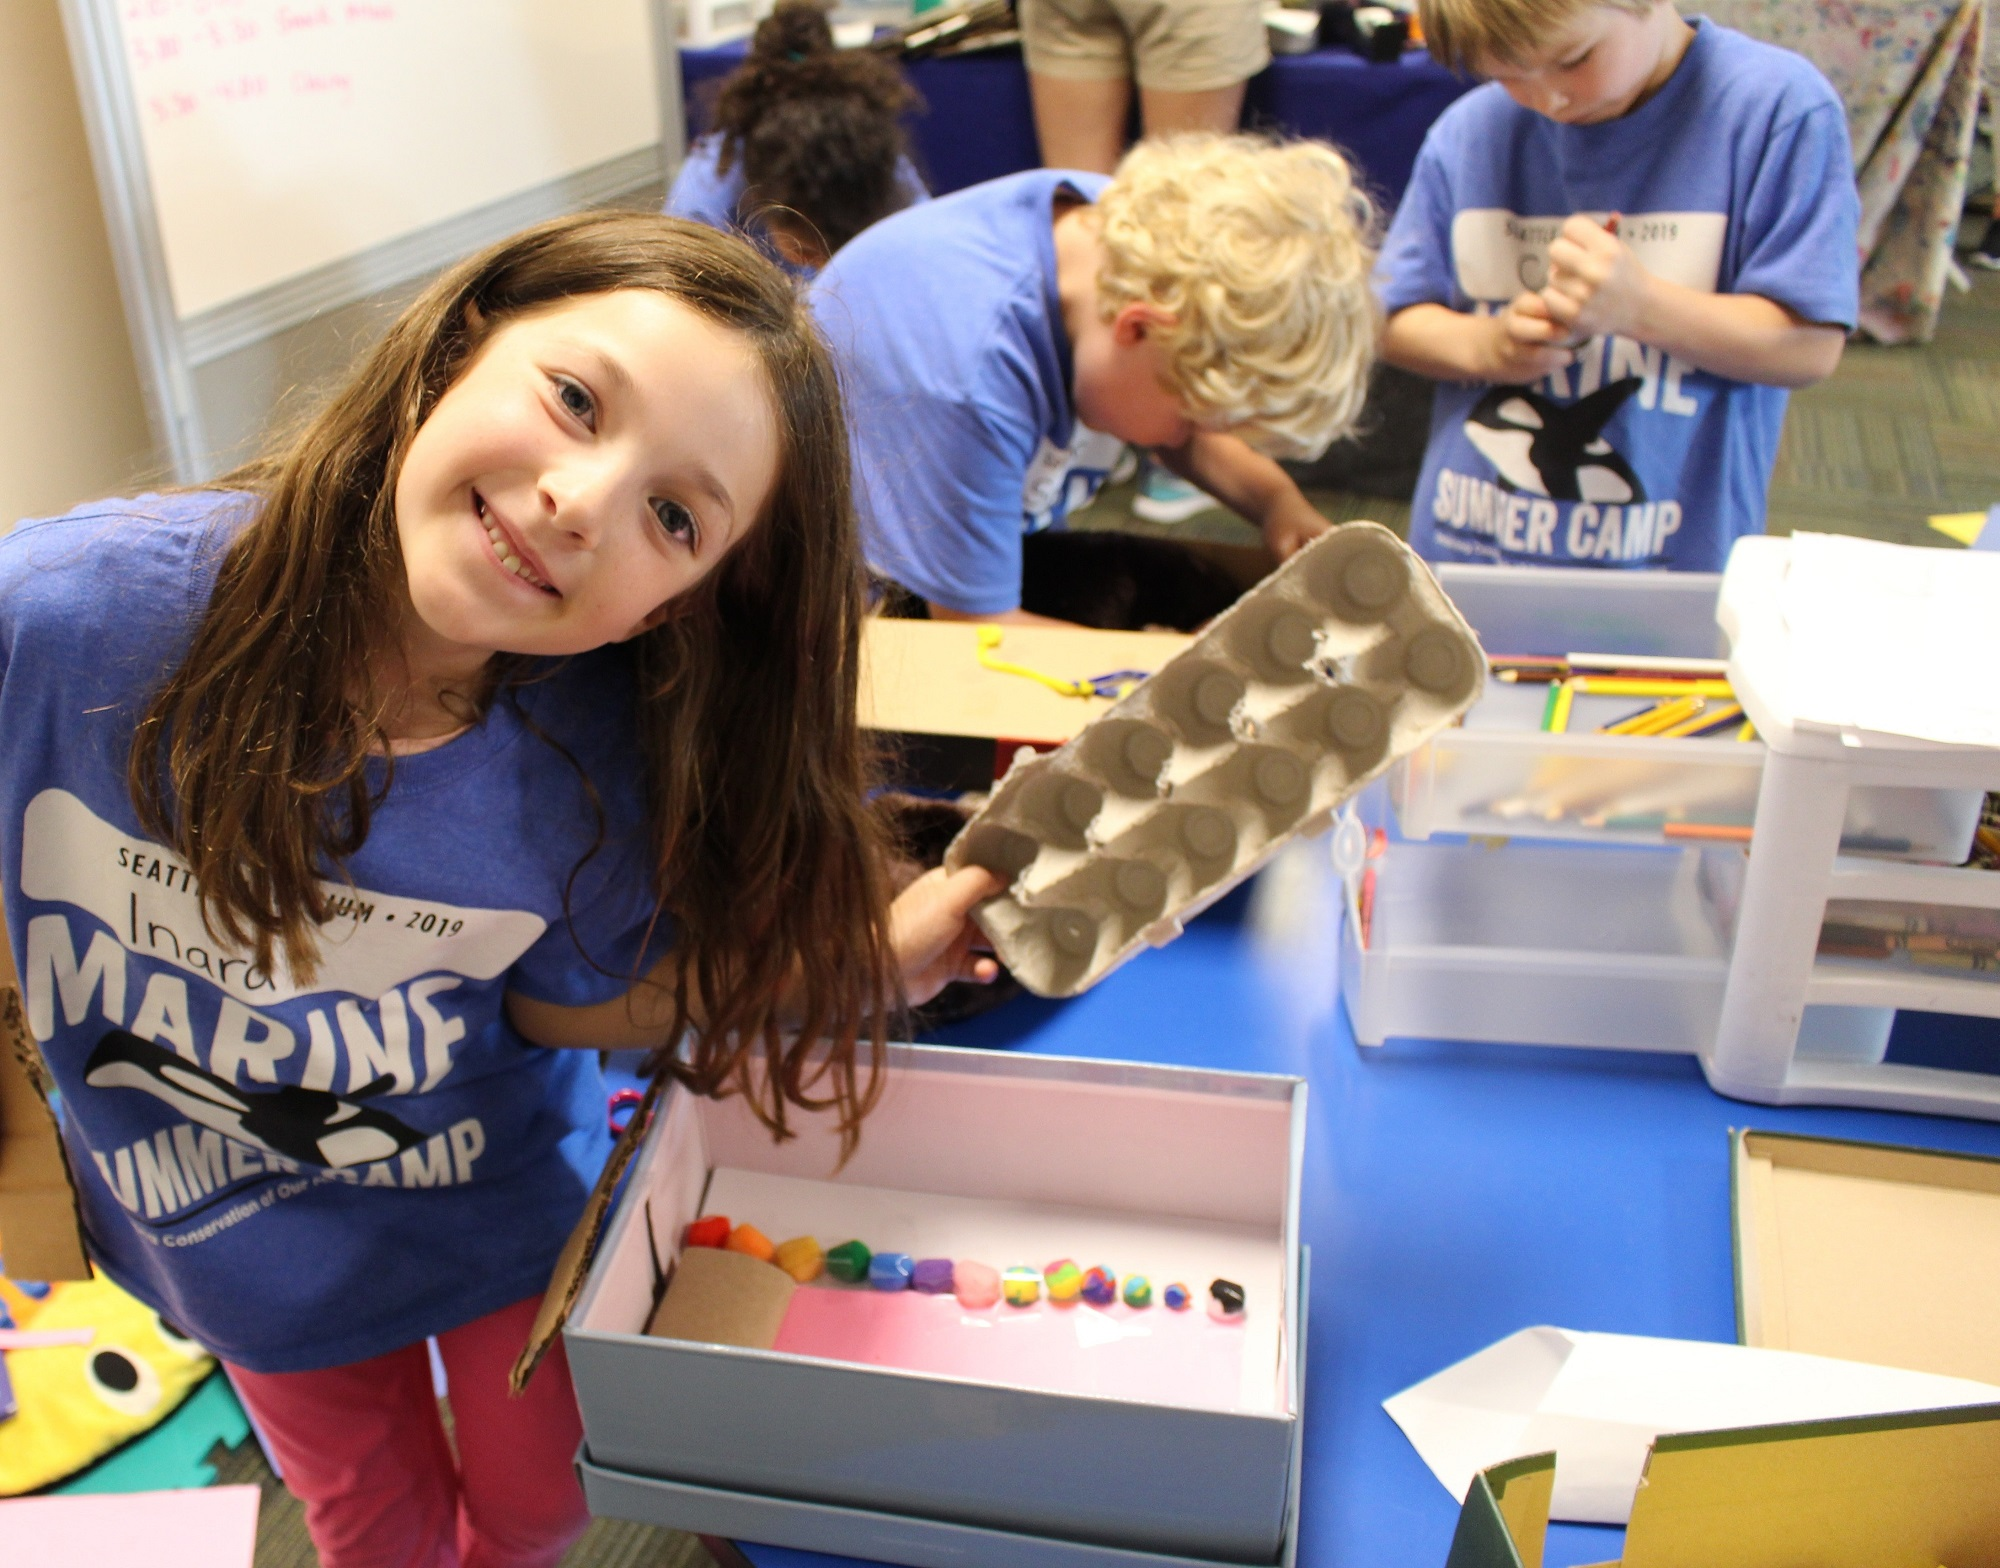 A camper shows her shoebox sea otter home